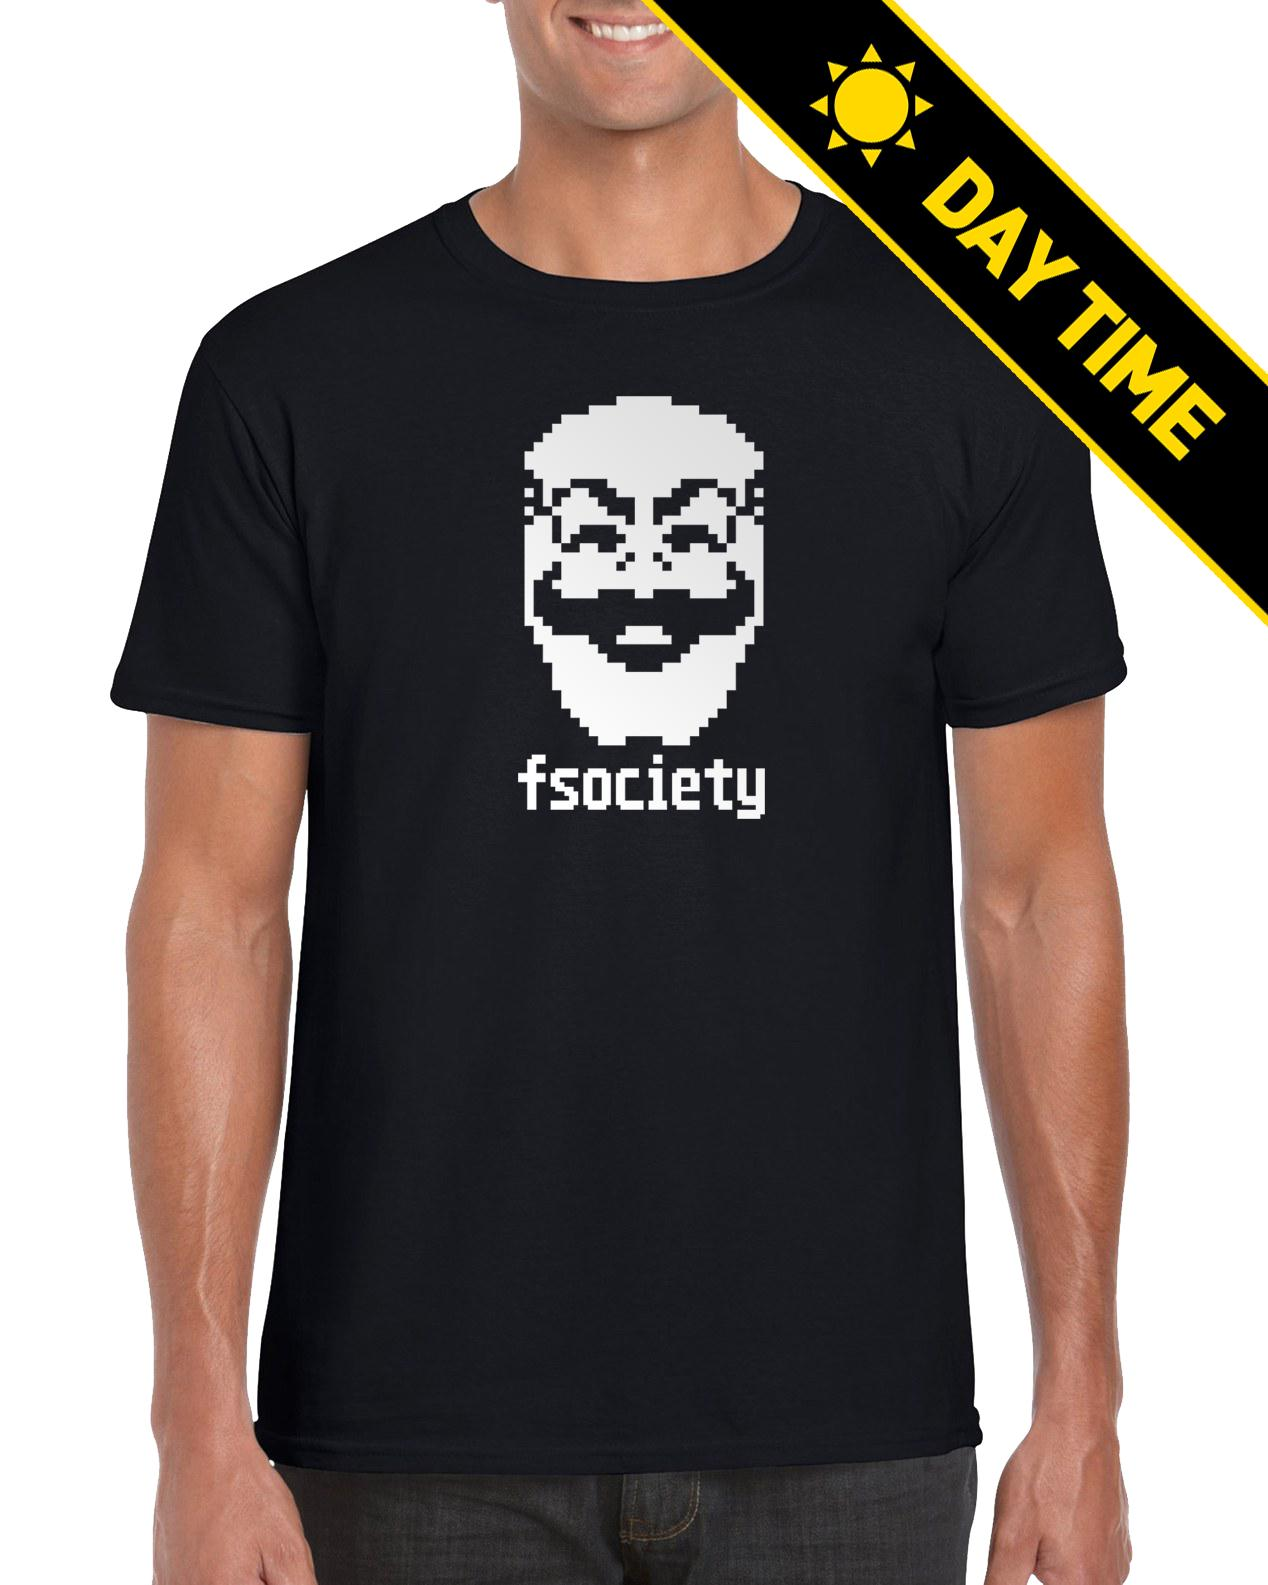 8105950ae2a6 GLOW IN THE DARK! Fsociety Mr Robot Hacker Pixelated Fan Made TShirt 2018  High Quality Brand Men T Shirt Casual Short Sleeve Silly T Shirt Make Your  Own Tee ...